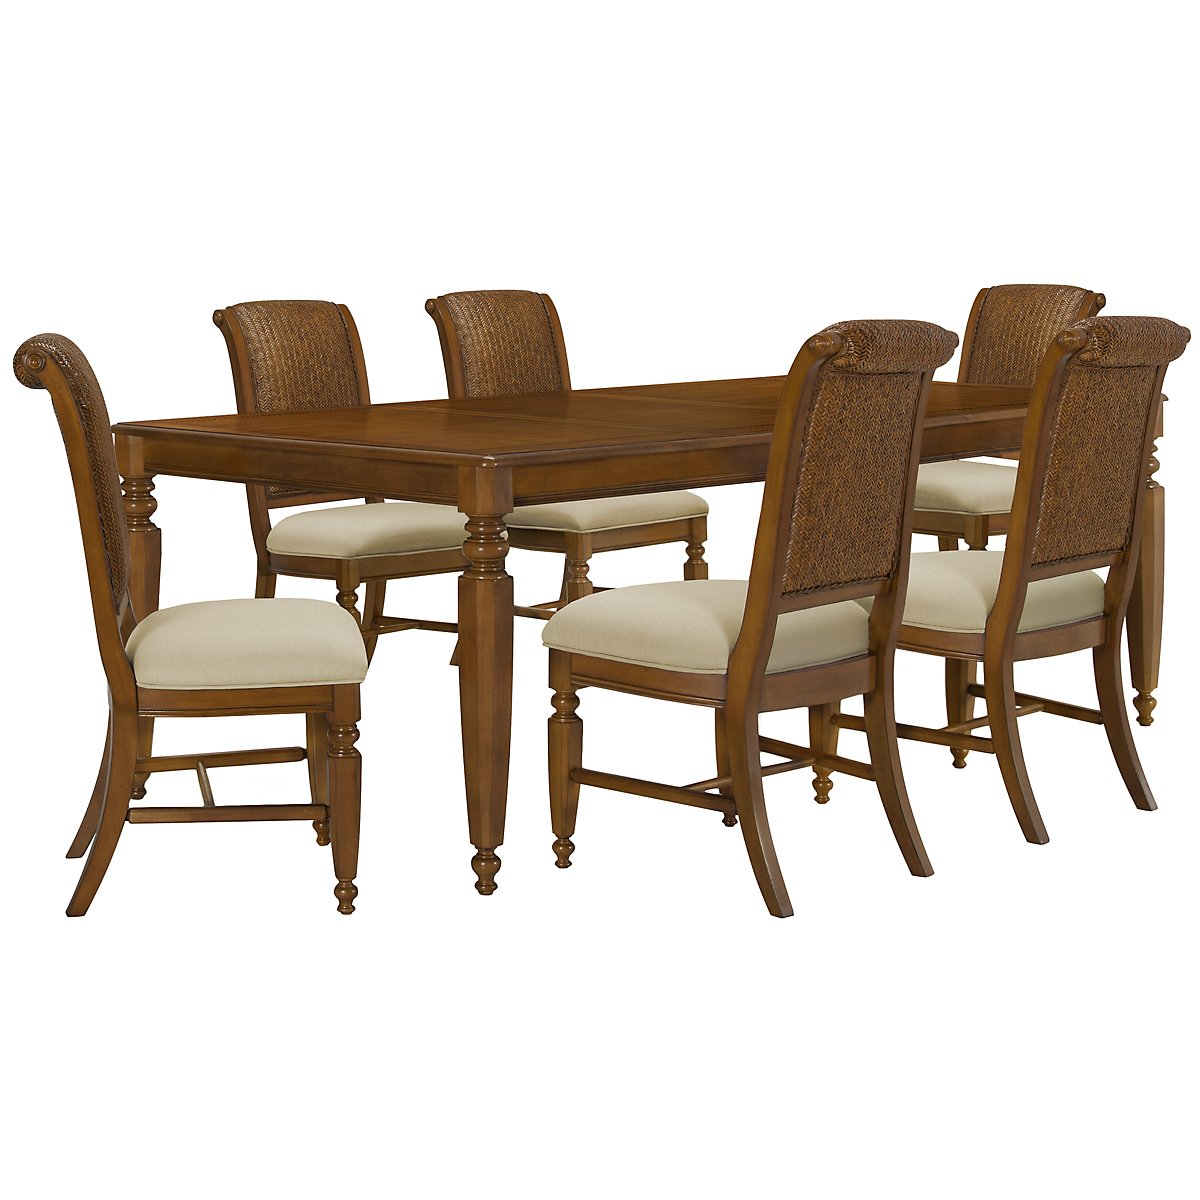 Claire Mid Tone Rectangular Table & 4 Woven Chairs